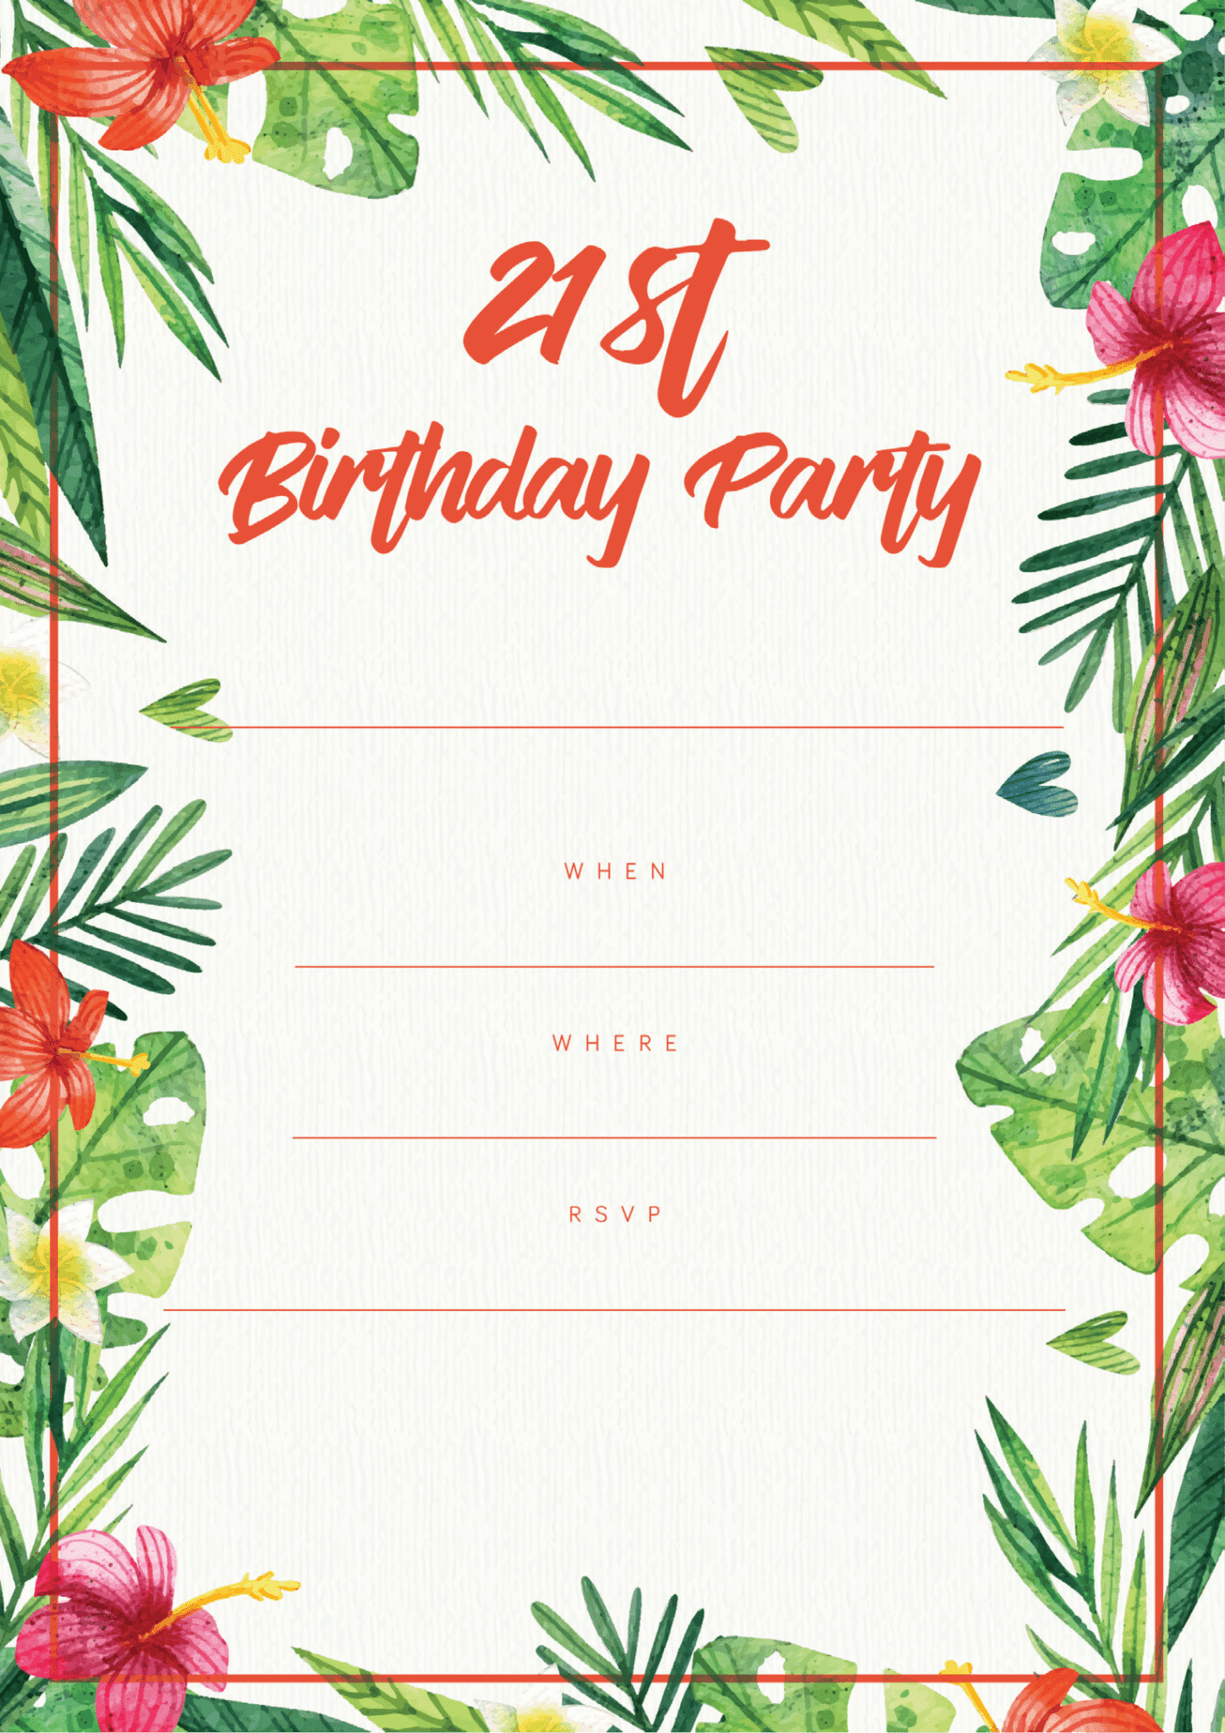 Red and green floral 21st birthday invite design